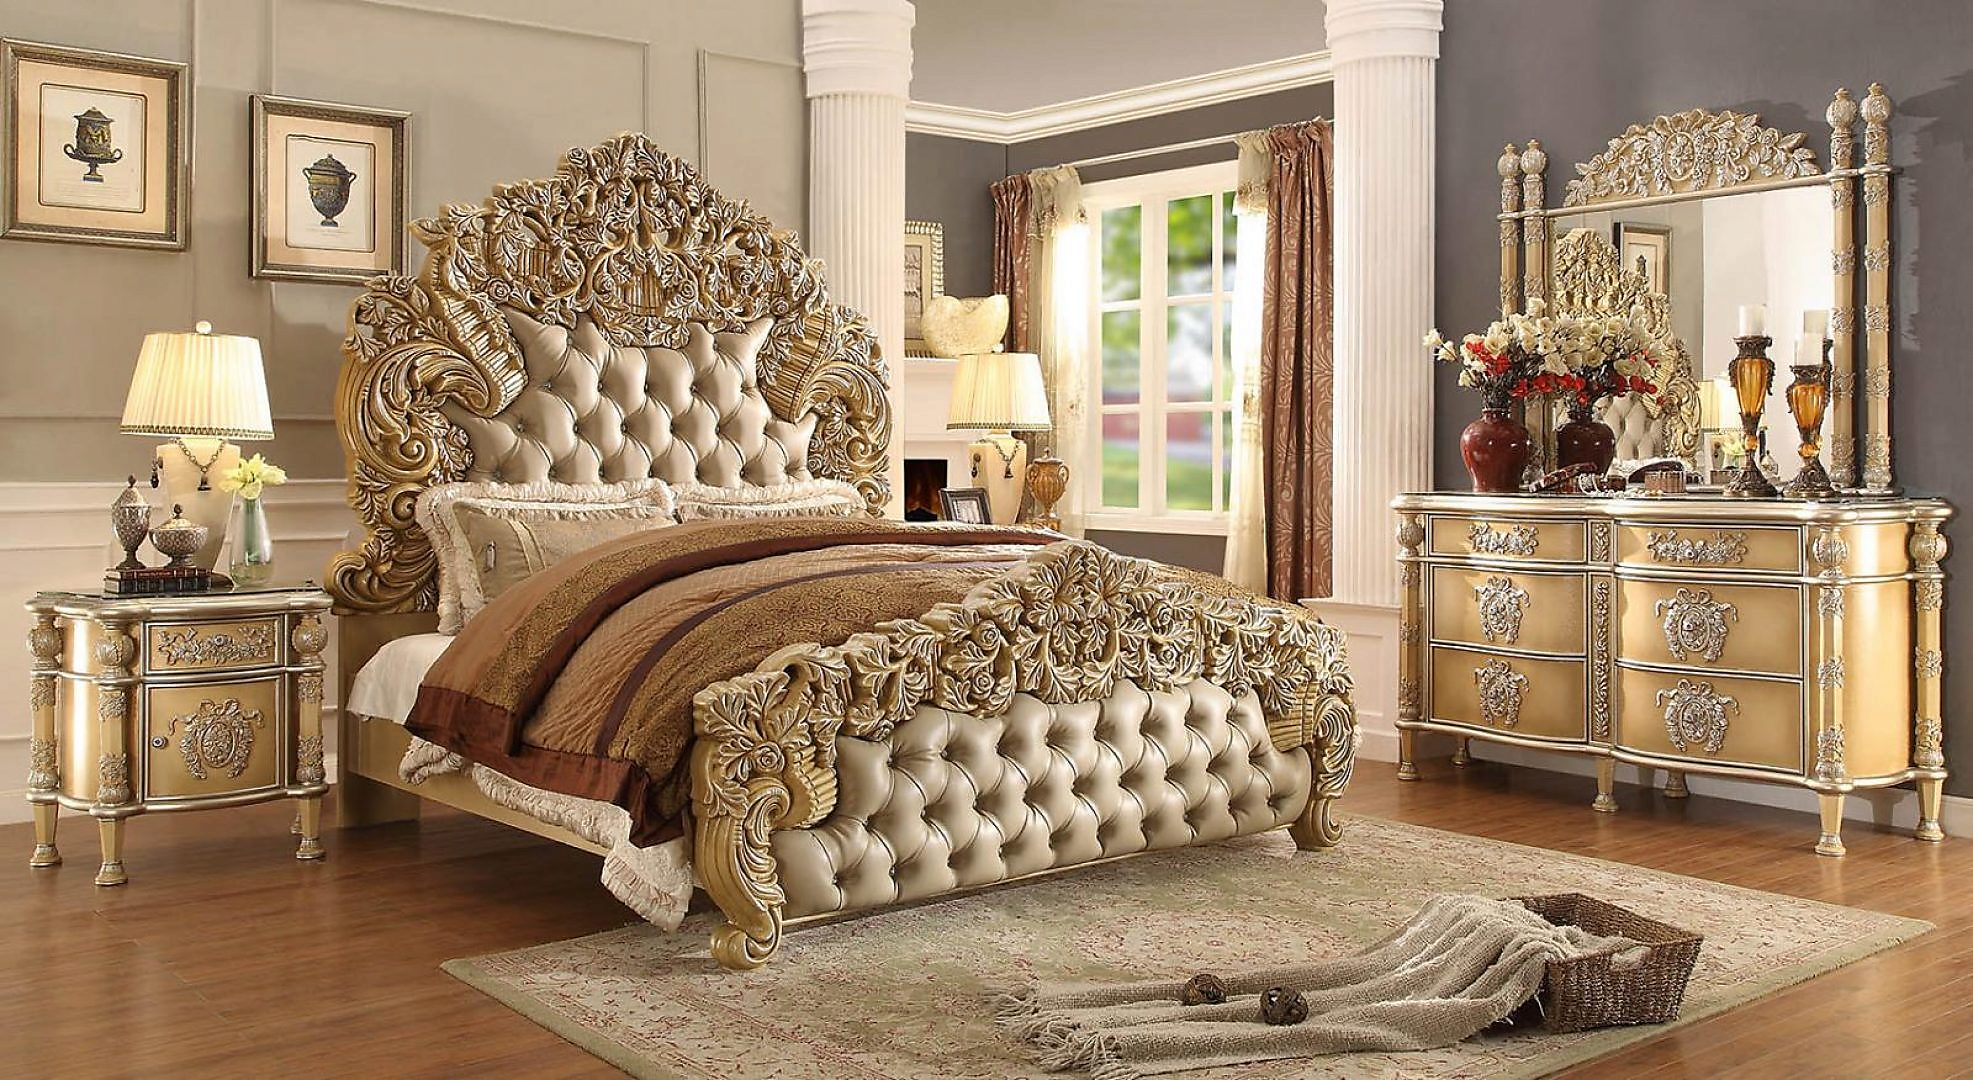 Traditional Classic Gilded HD-8015 California King Bed in Ivory by Homey Design